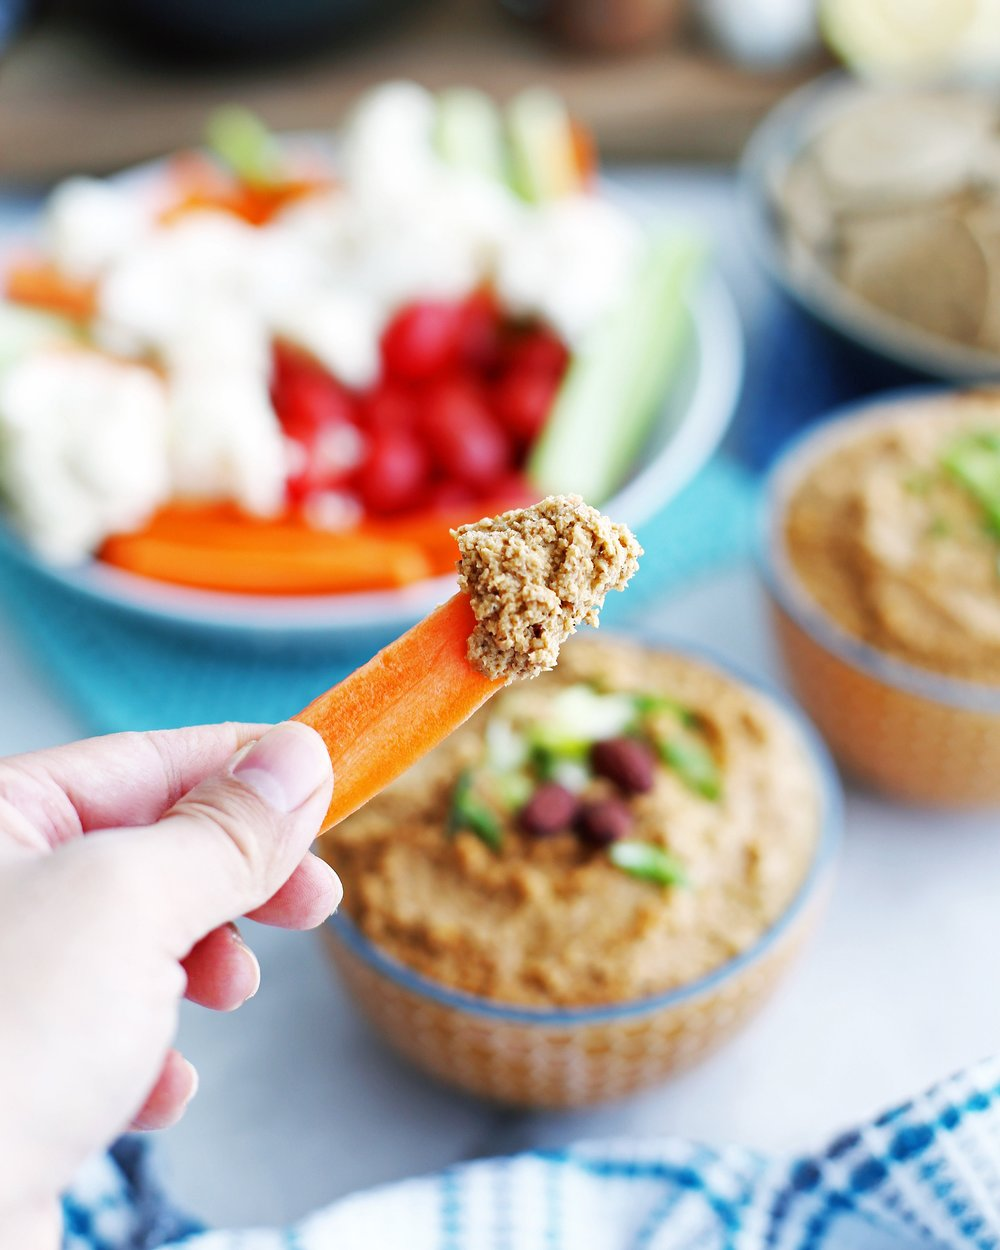 Close-up view of a hand holding a carrot stick that has been dipped in spicy roasted cauliflower garlic dip.